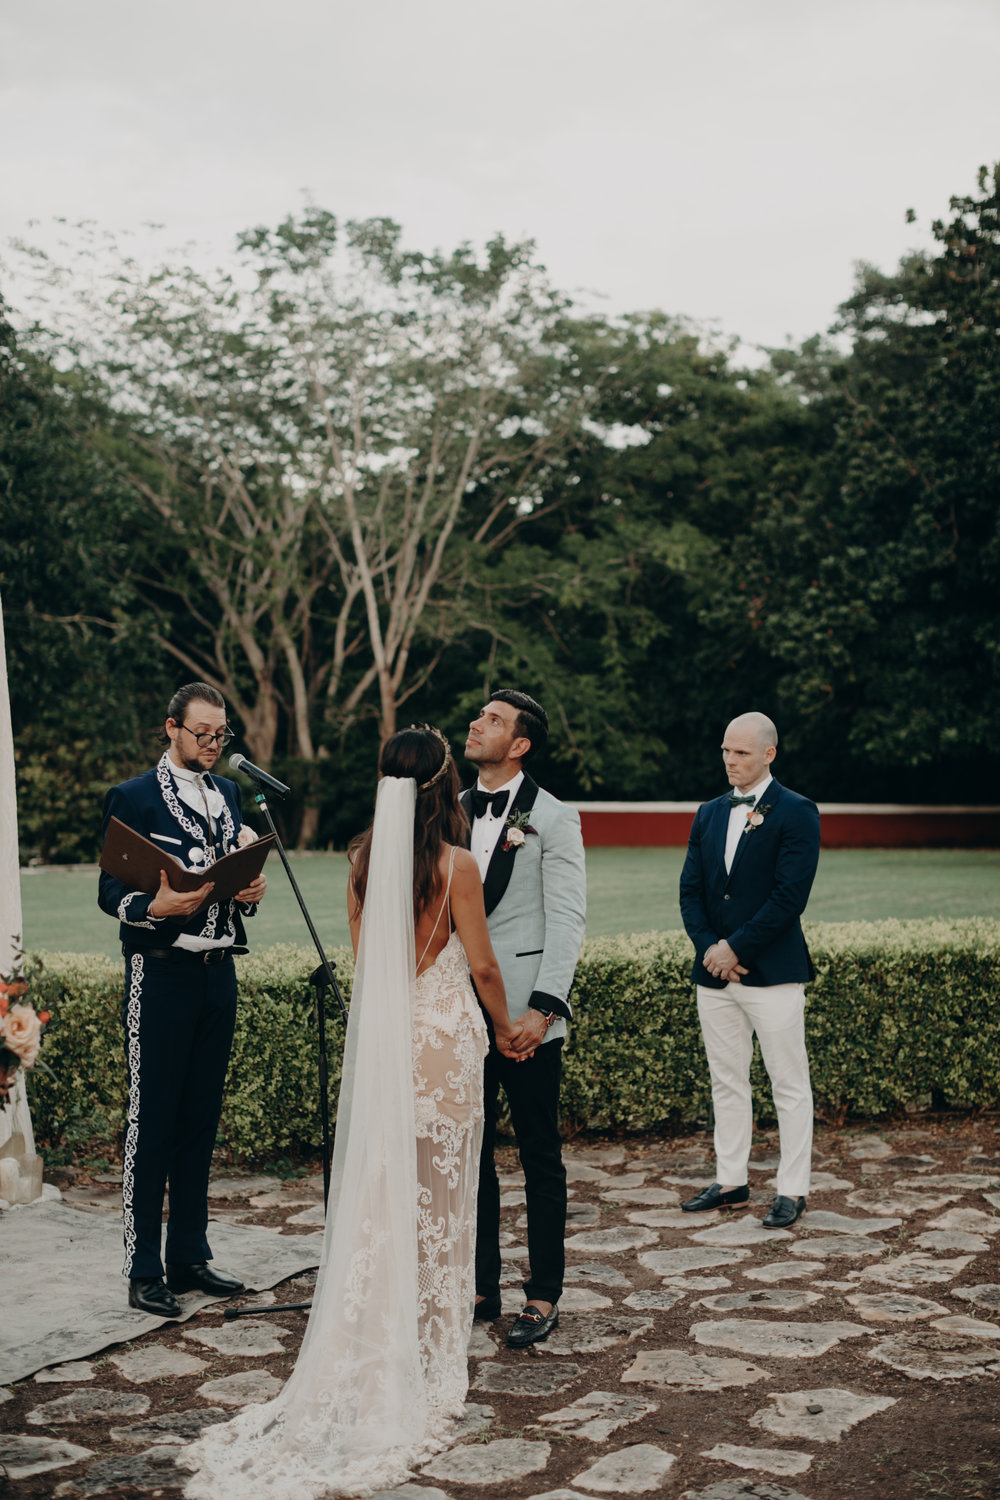 Hacienda Temozon Yucatan Mexico Wedding | Ida & Peter Emily Magers Photography-1061.jpg